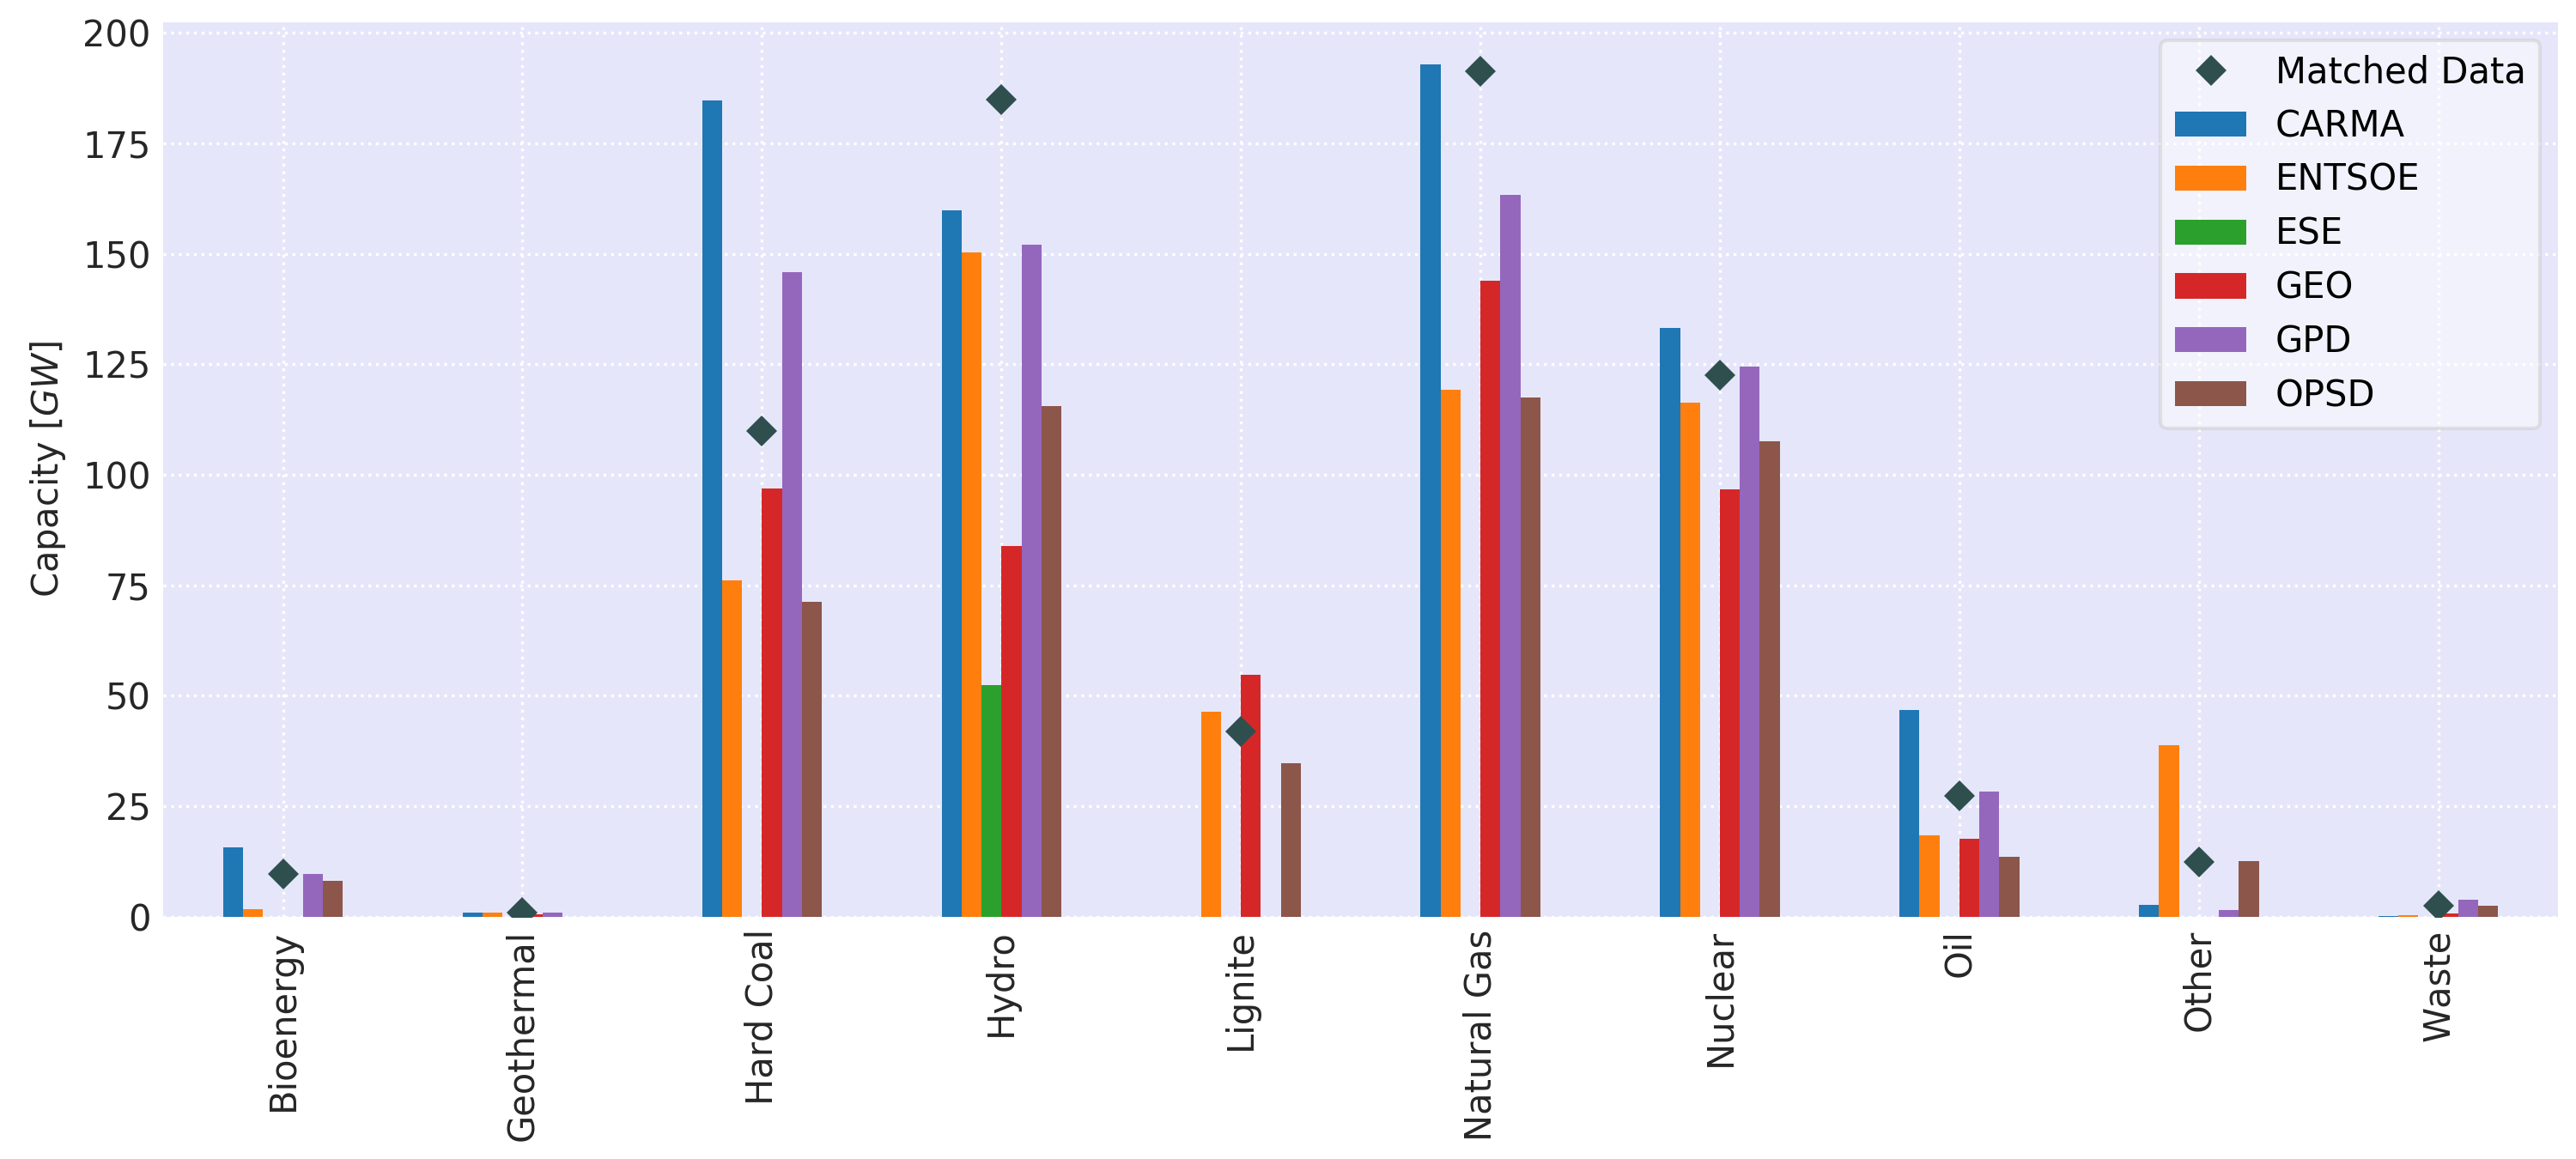 Total capacities per fuel type for the different data sources and the merged dataset.